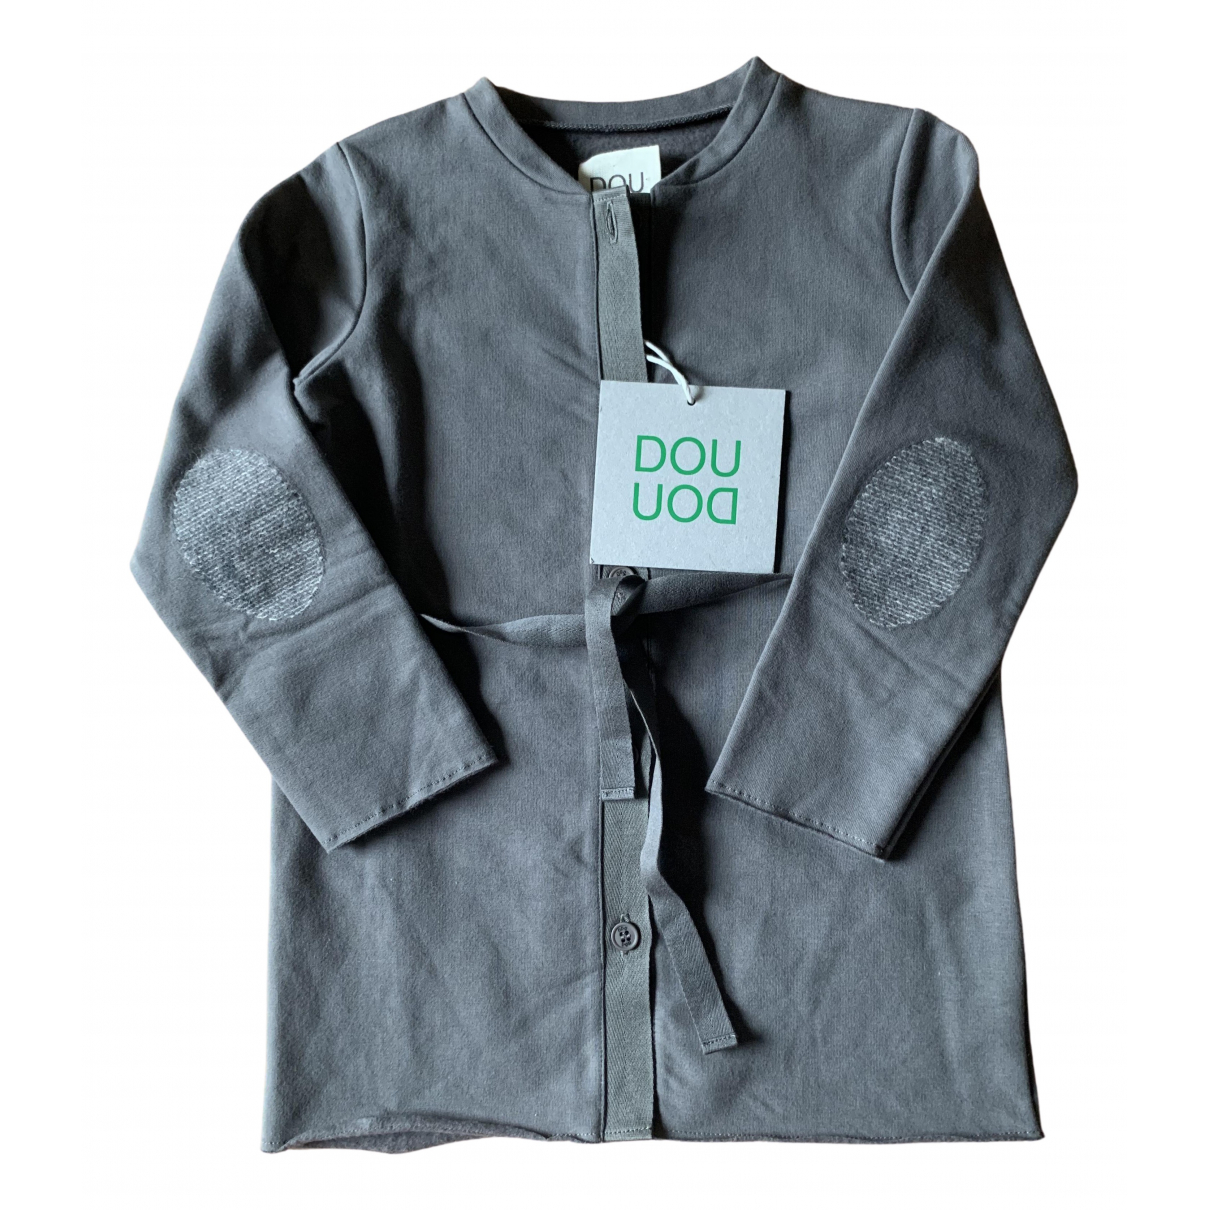 Douuod N Grey Cotton Knitwear for Kids 4 years - up to 102cm FR